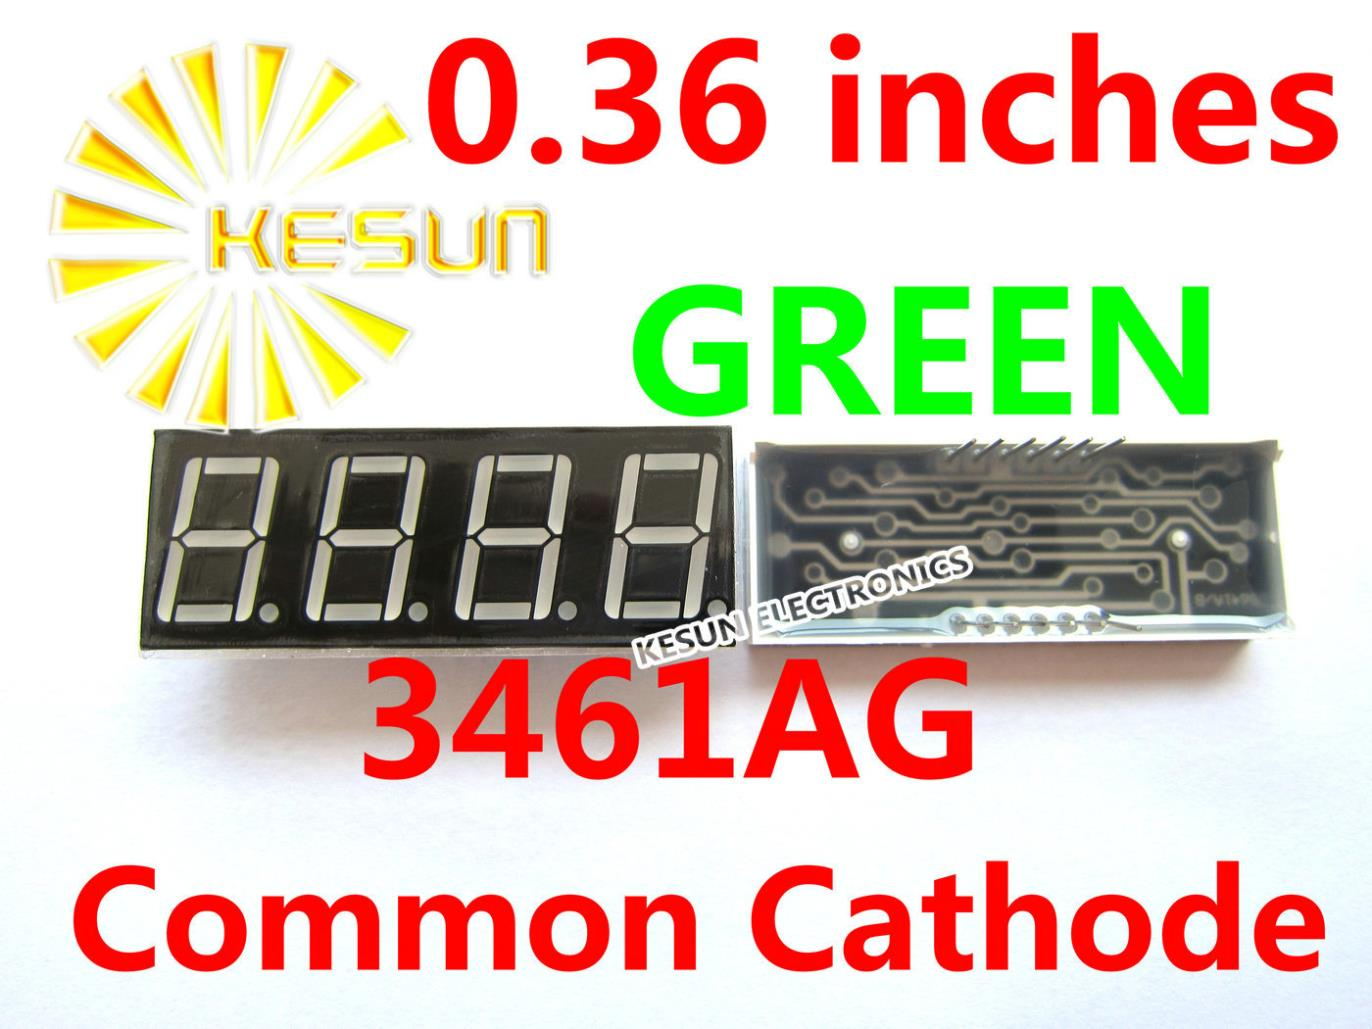 5PCS X 0.36 Inches Green Red Common Cathode/Anode 4 Digital Tube  3461AG 3461BG 3461AS 3461BS LED Display Module Light Beads